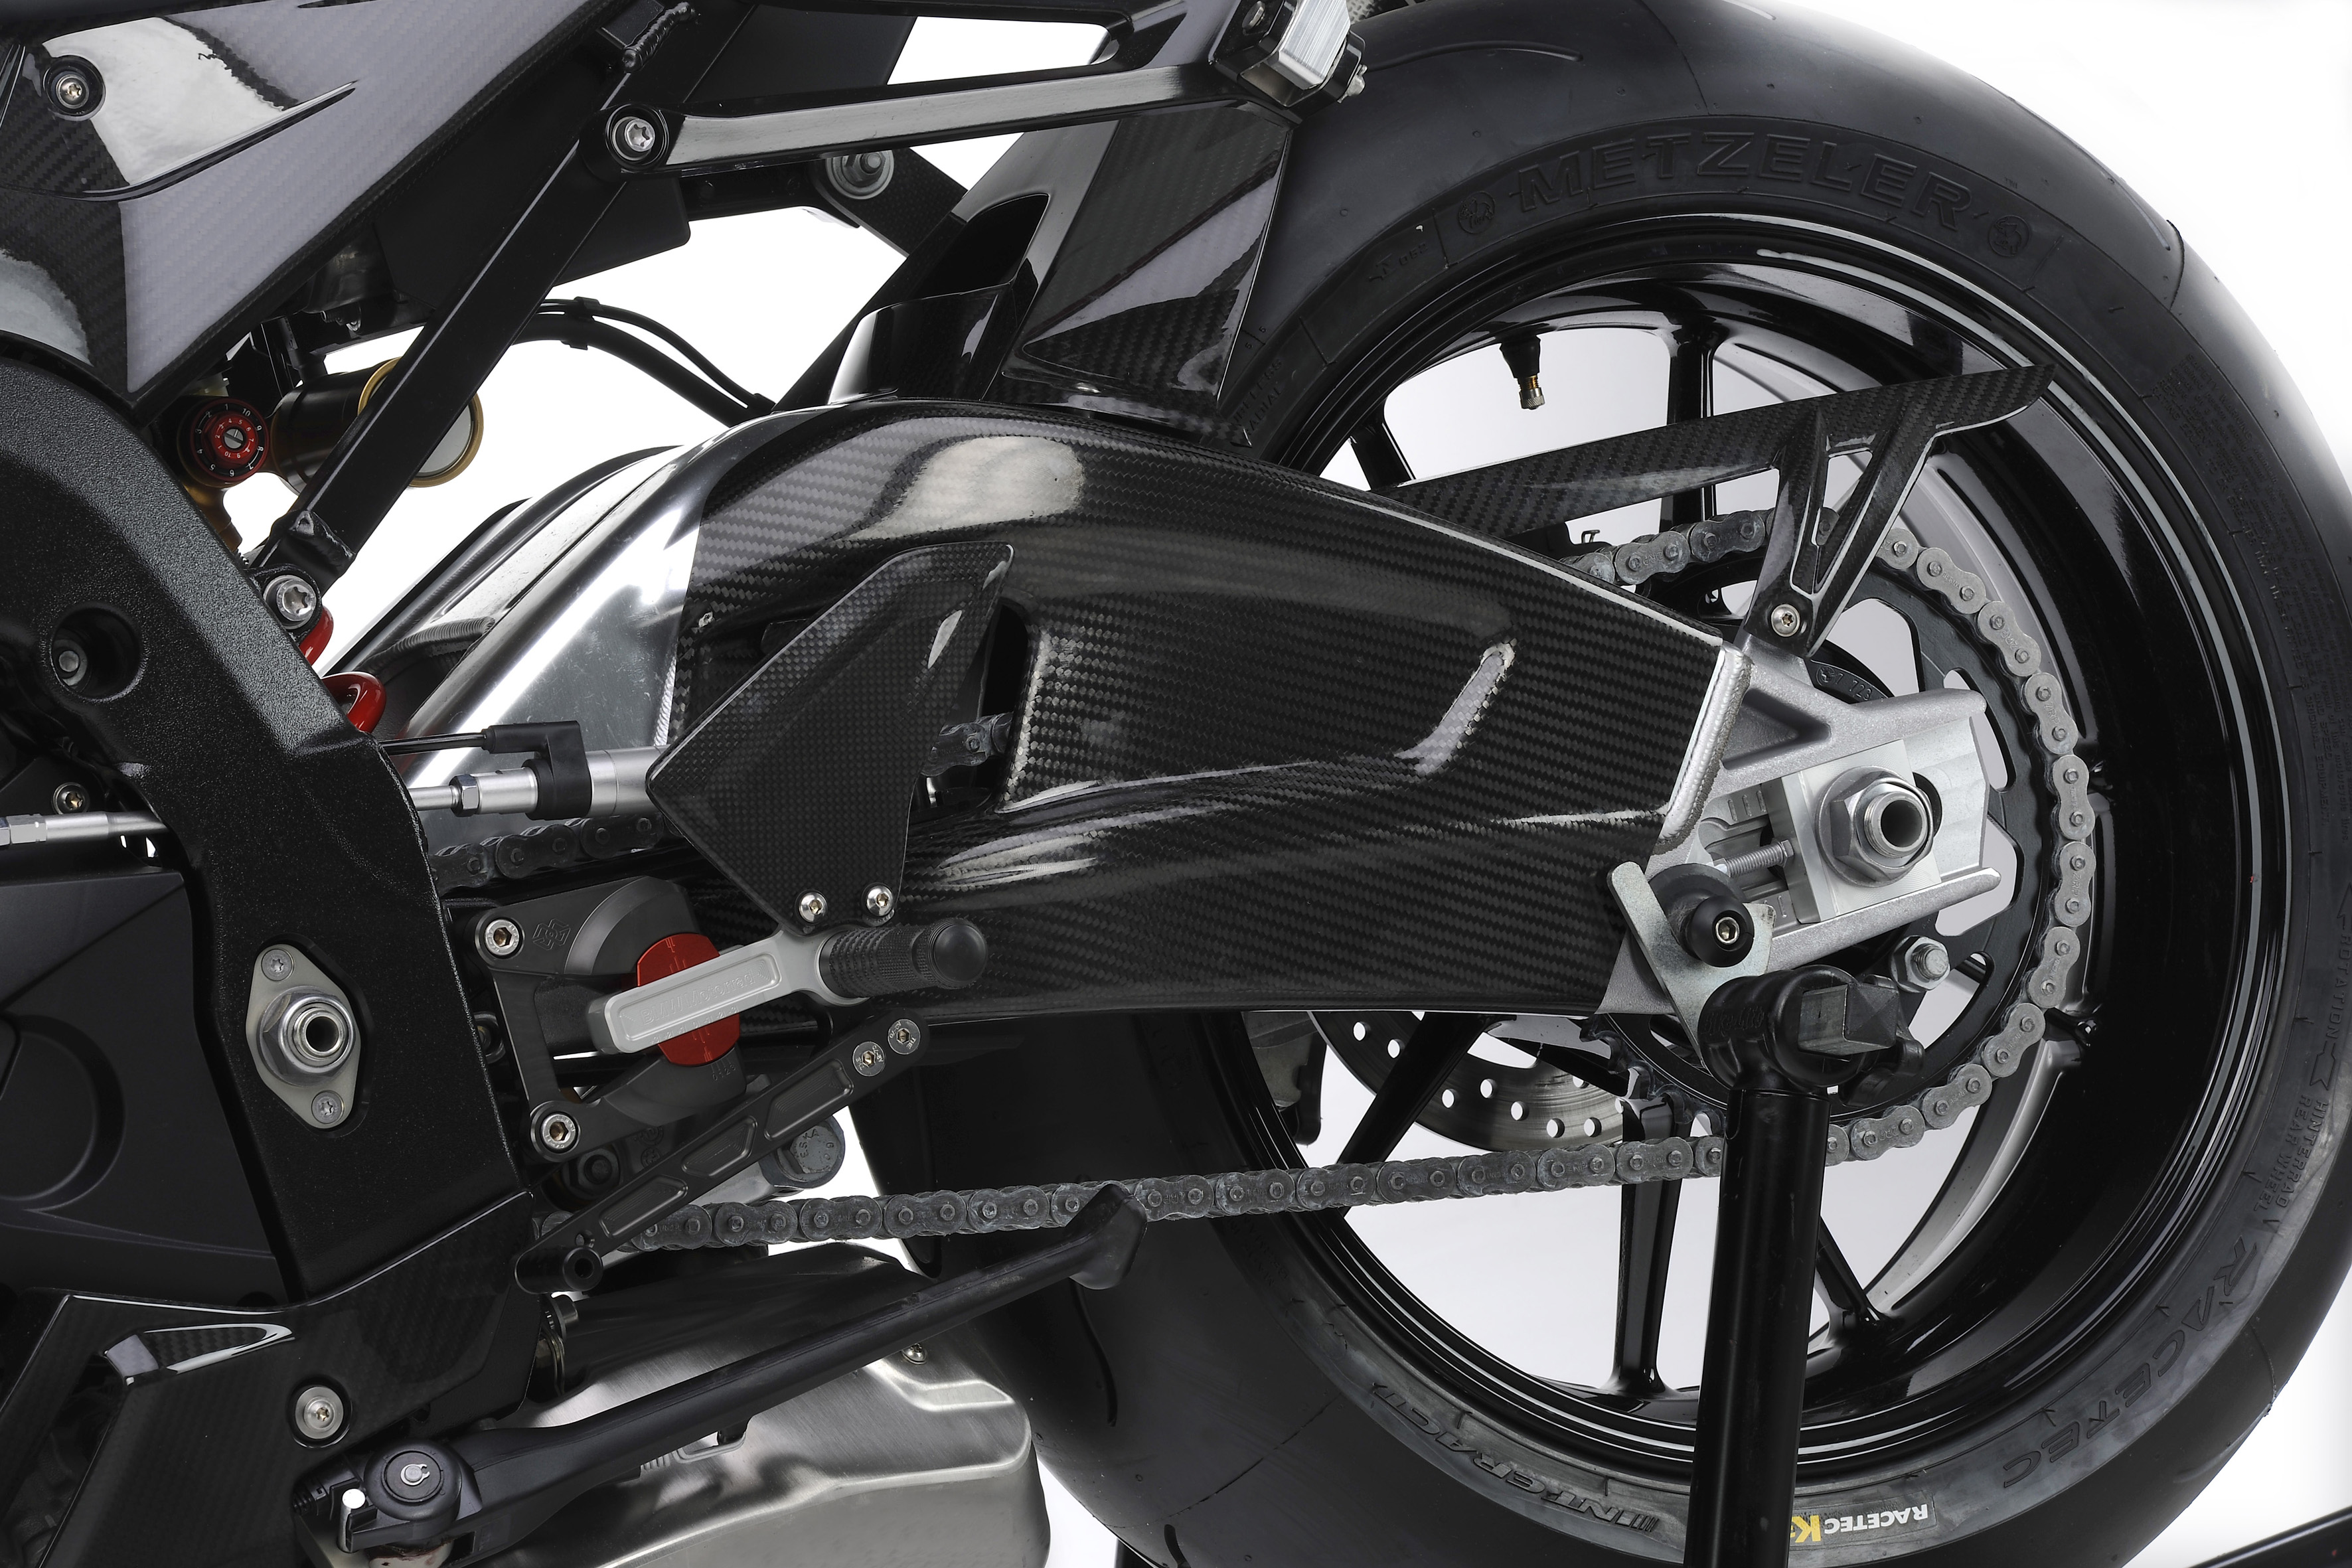 BMW S 1000 RR Limited Edition - Adjustable gear pedal HP Special Parts - Carbon swingarm cover (02/2011)